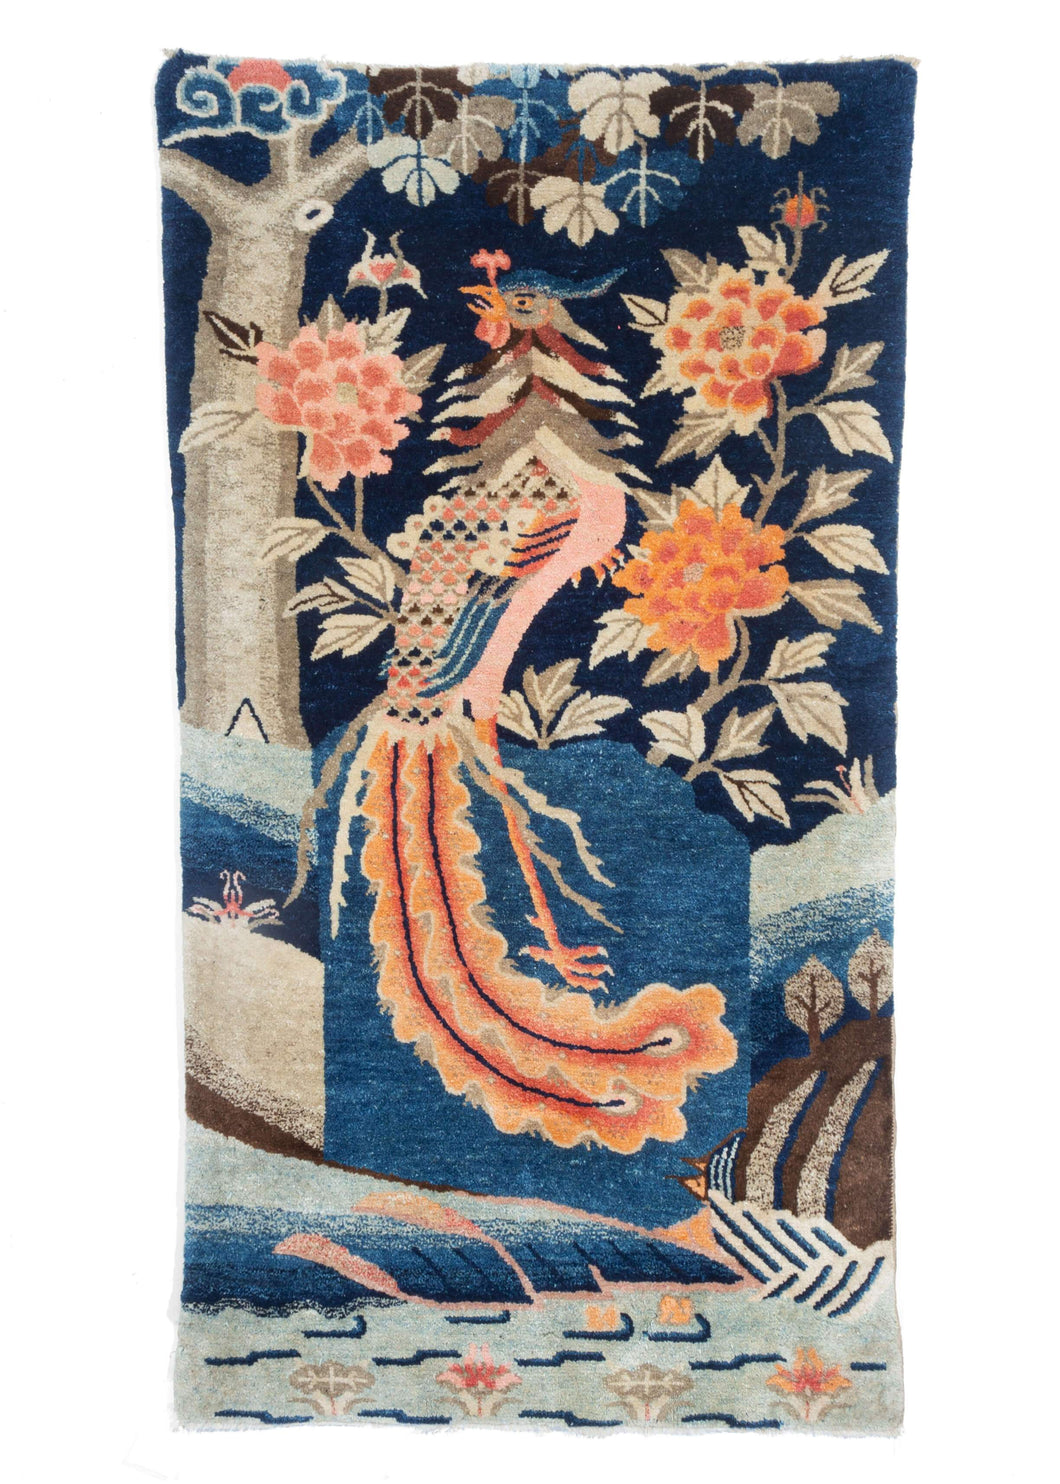 Chinese Pao Tao Rug featuring a Phoenix bird or pheasant surrounded by chrysanthemums, lily pads and a beautiful tree